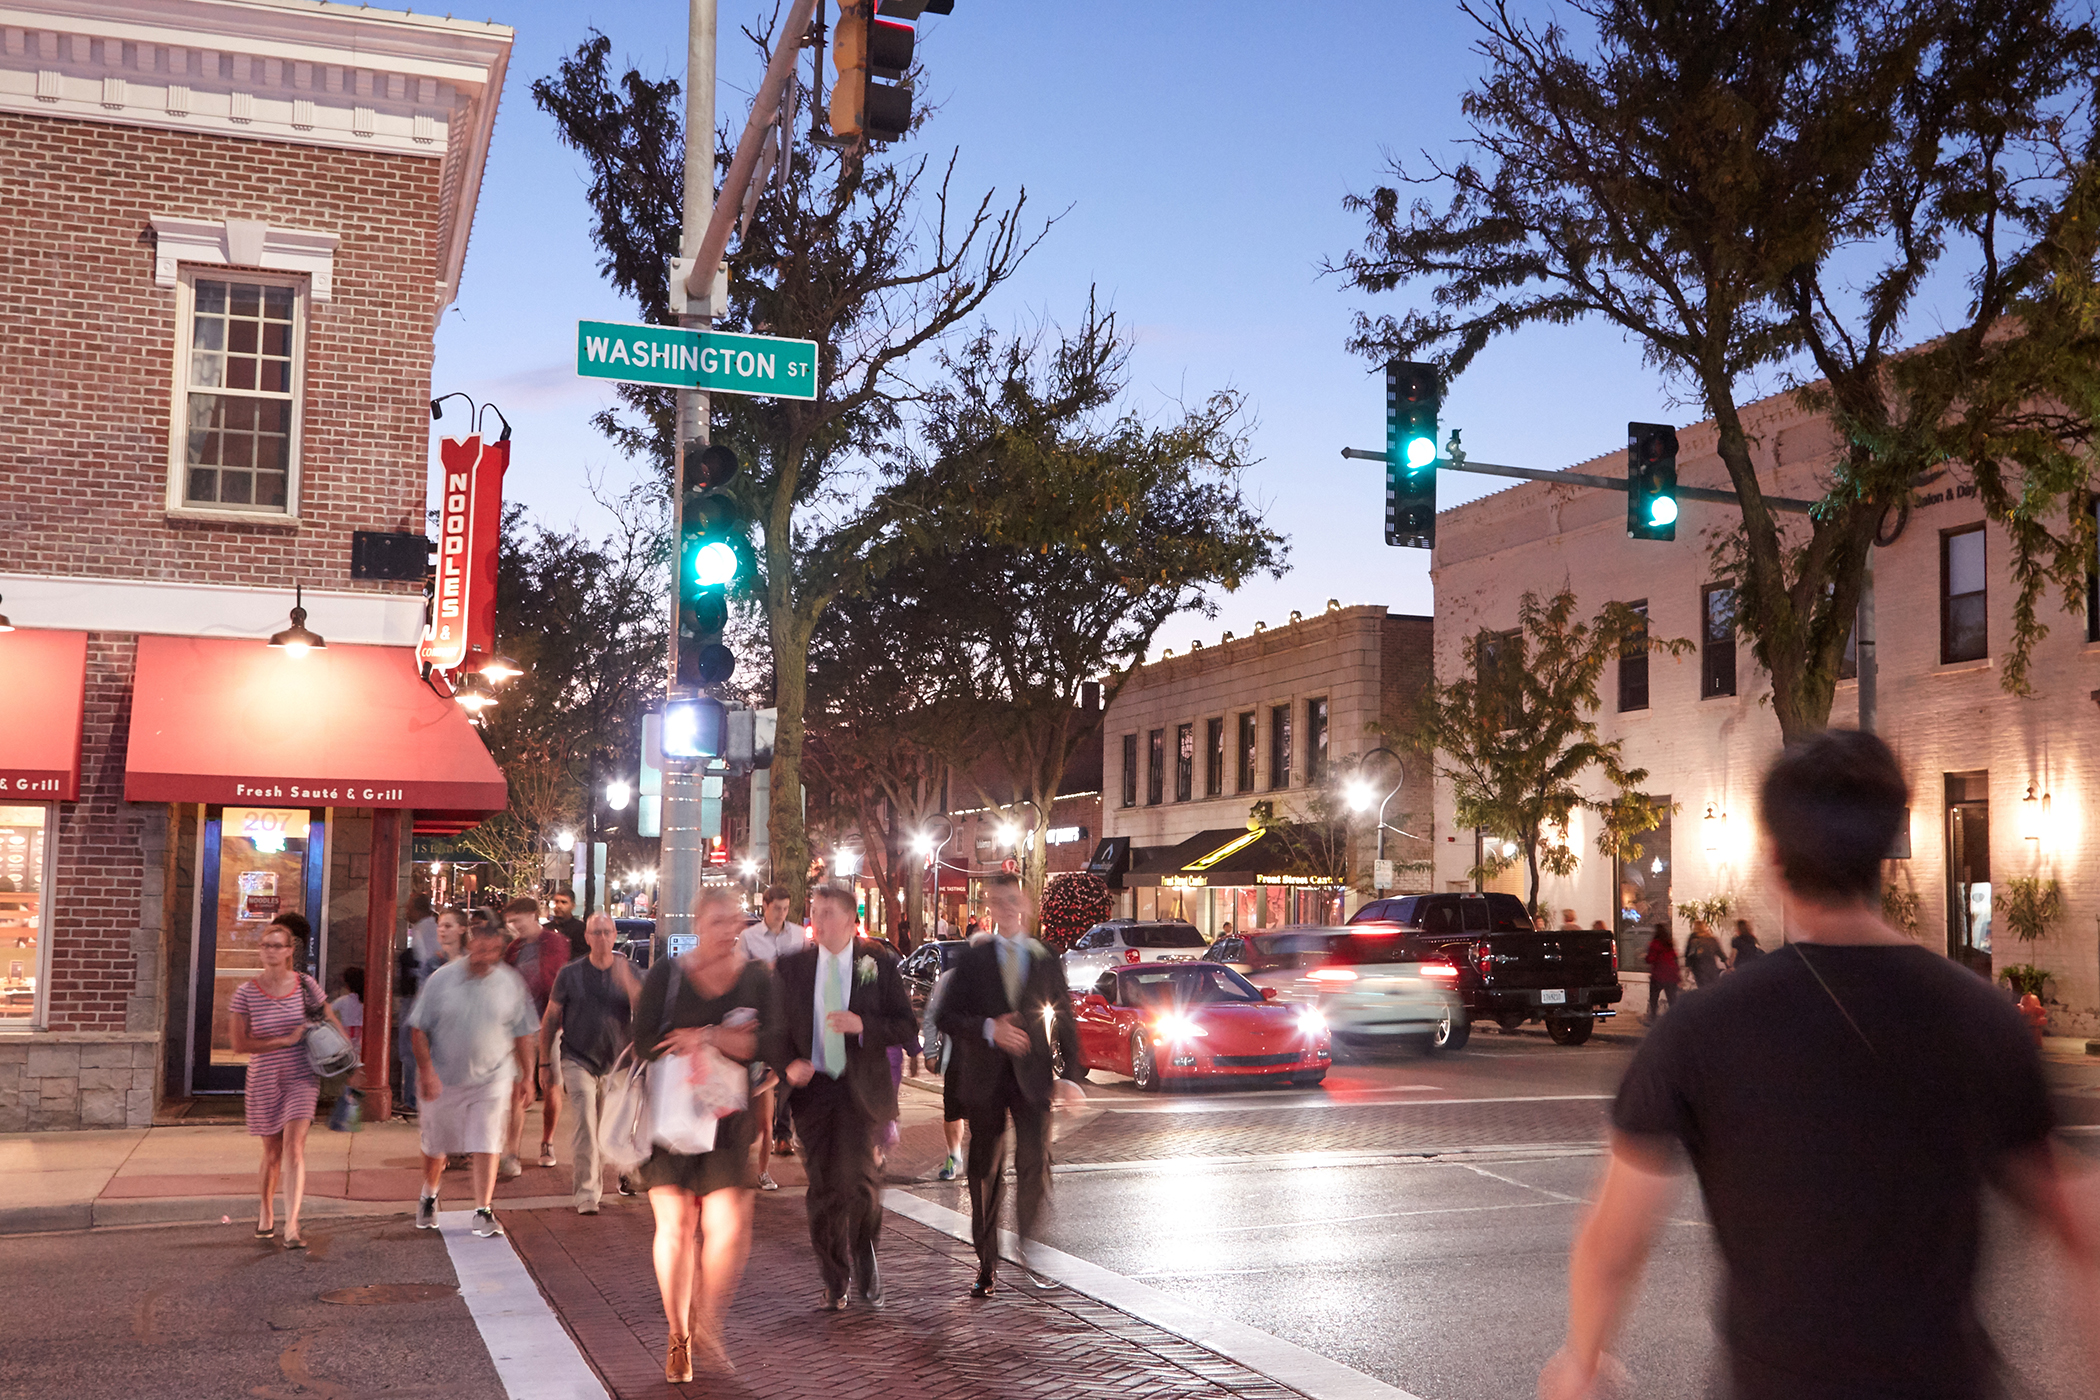 Naperville, Illinois. There's plenty to do in downtown Naperville, with more than 100 shops, 40 restaurants, and the rejuvenated, art-lined Riverwalk.